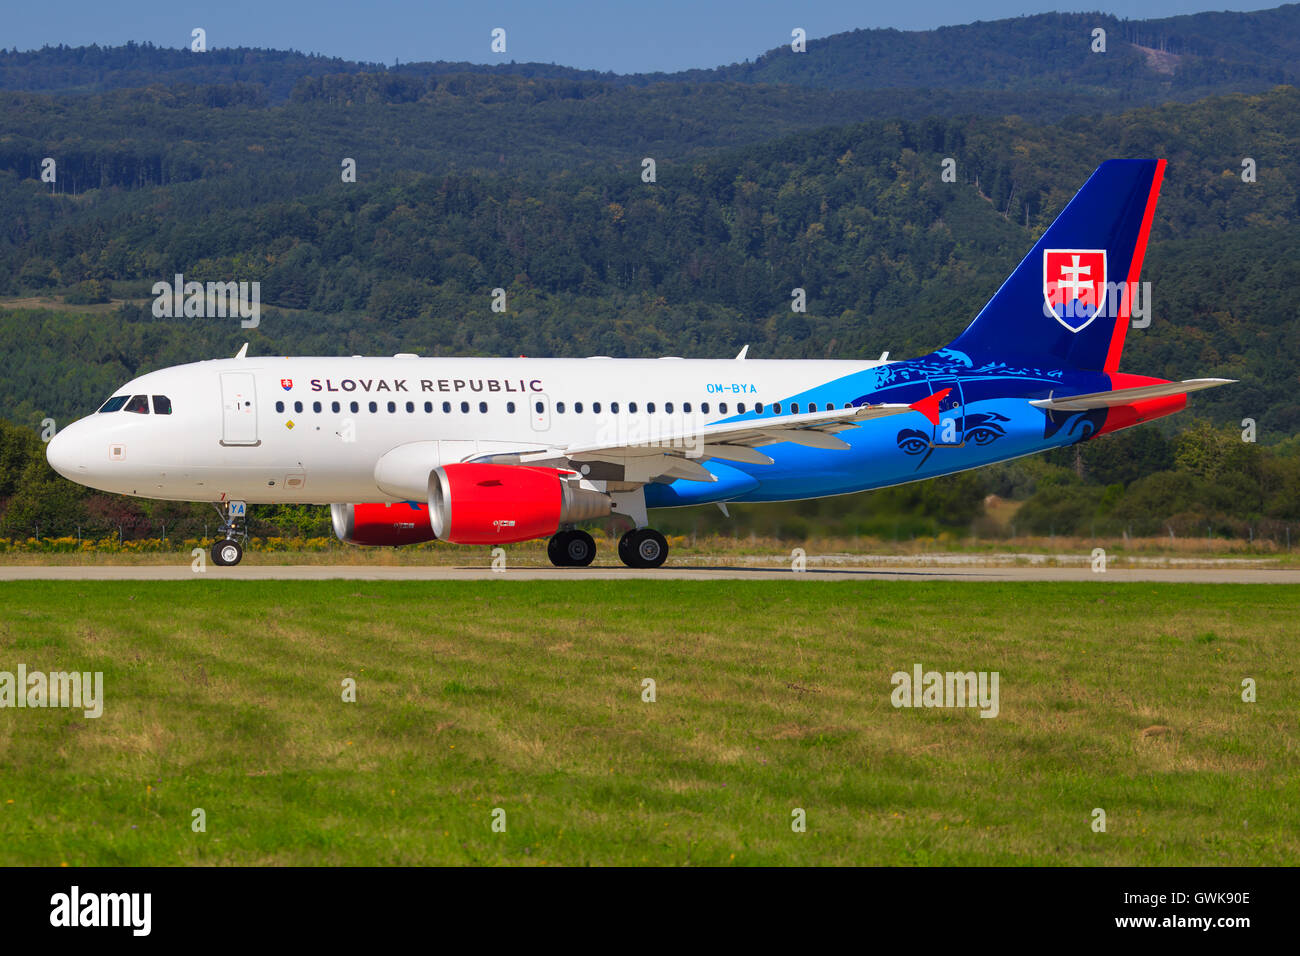 Lowpass of Airbus A320 from Slovenska Republika at SIAF airshow in Sliac, Slovakia - Stock Image